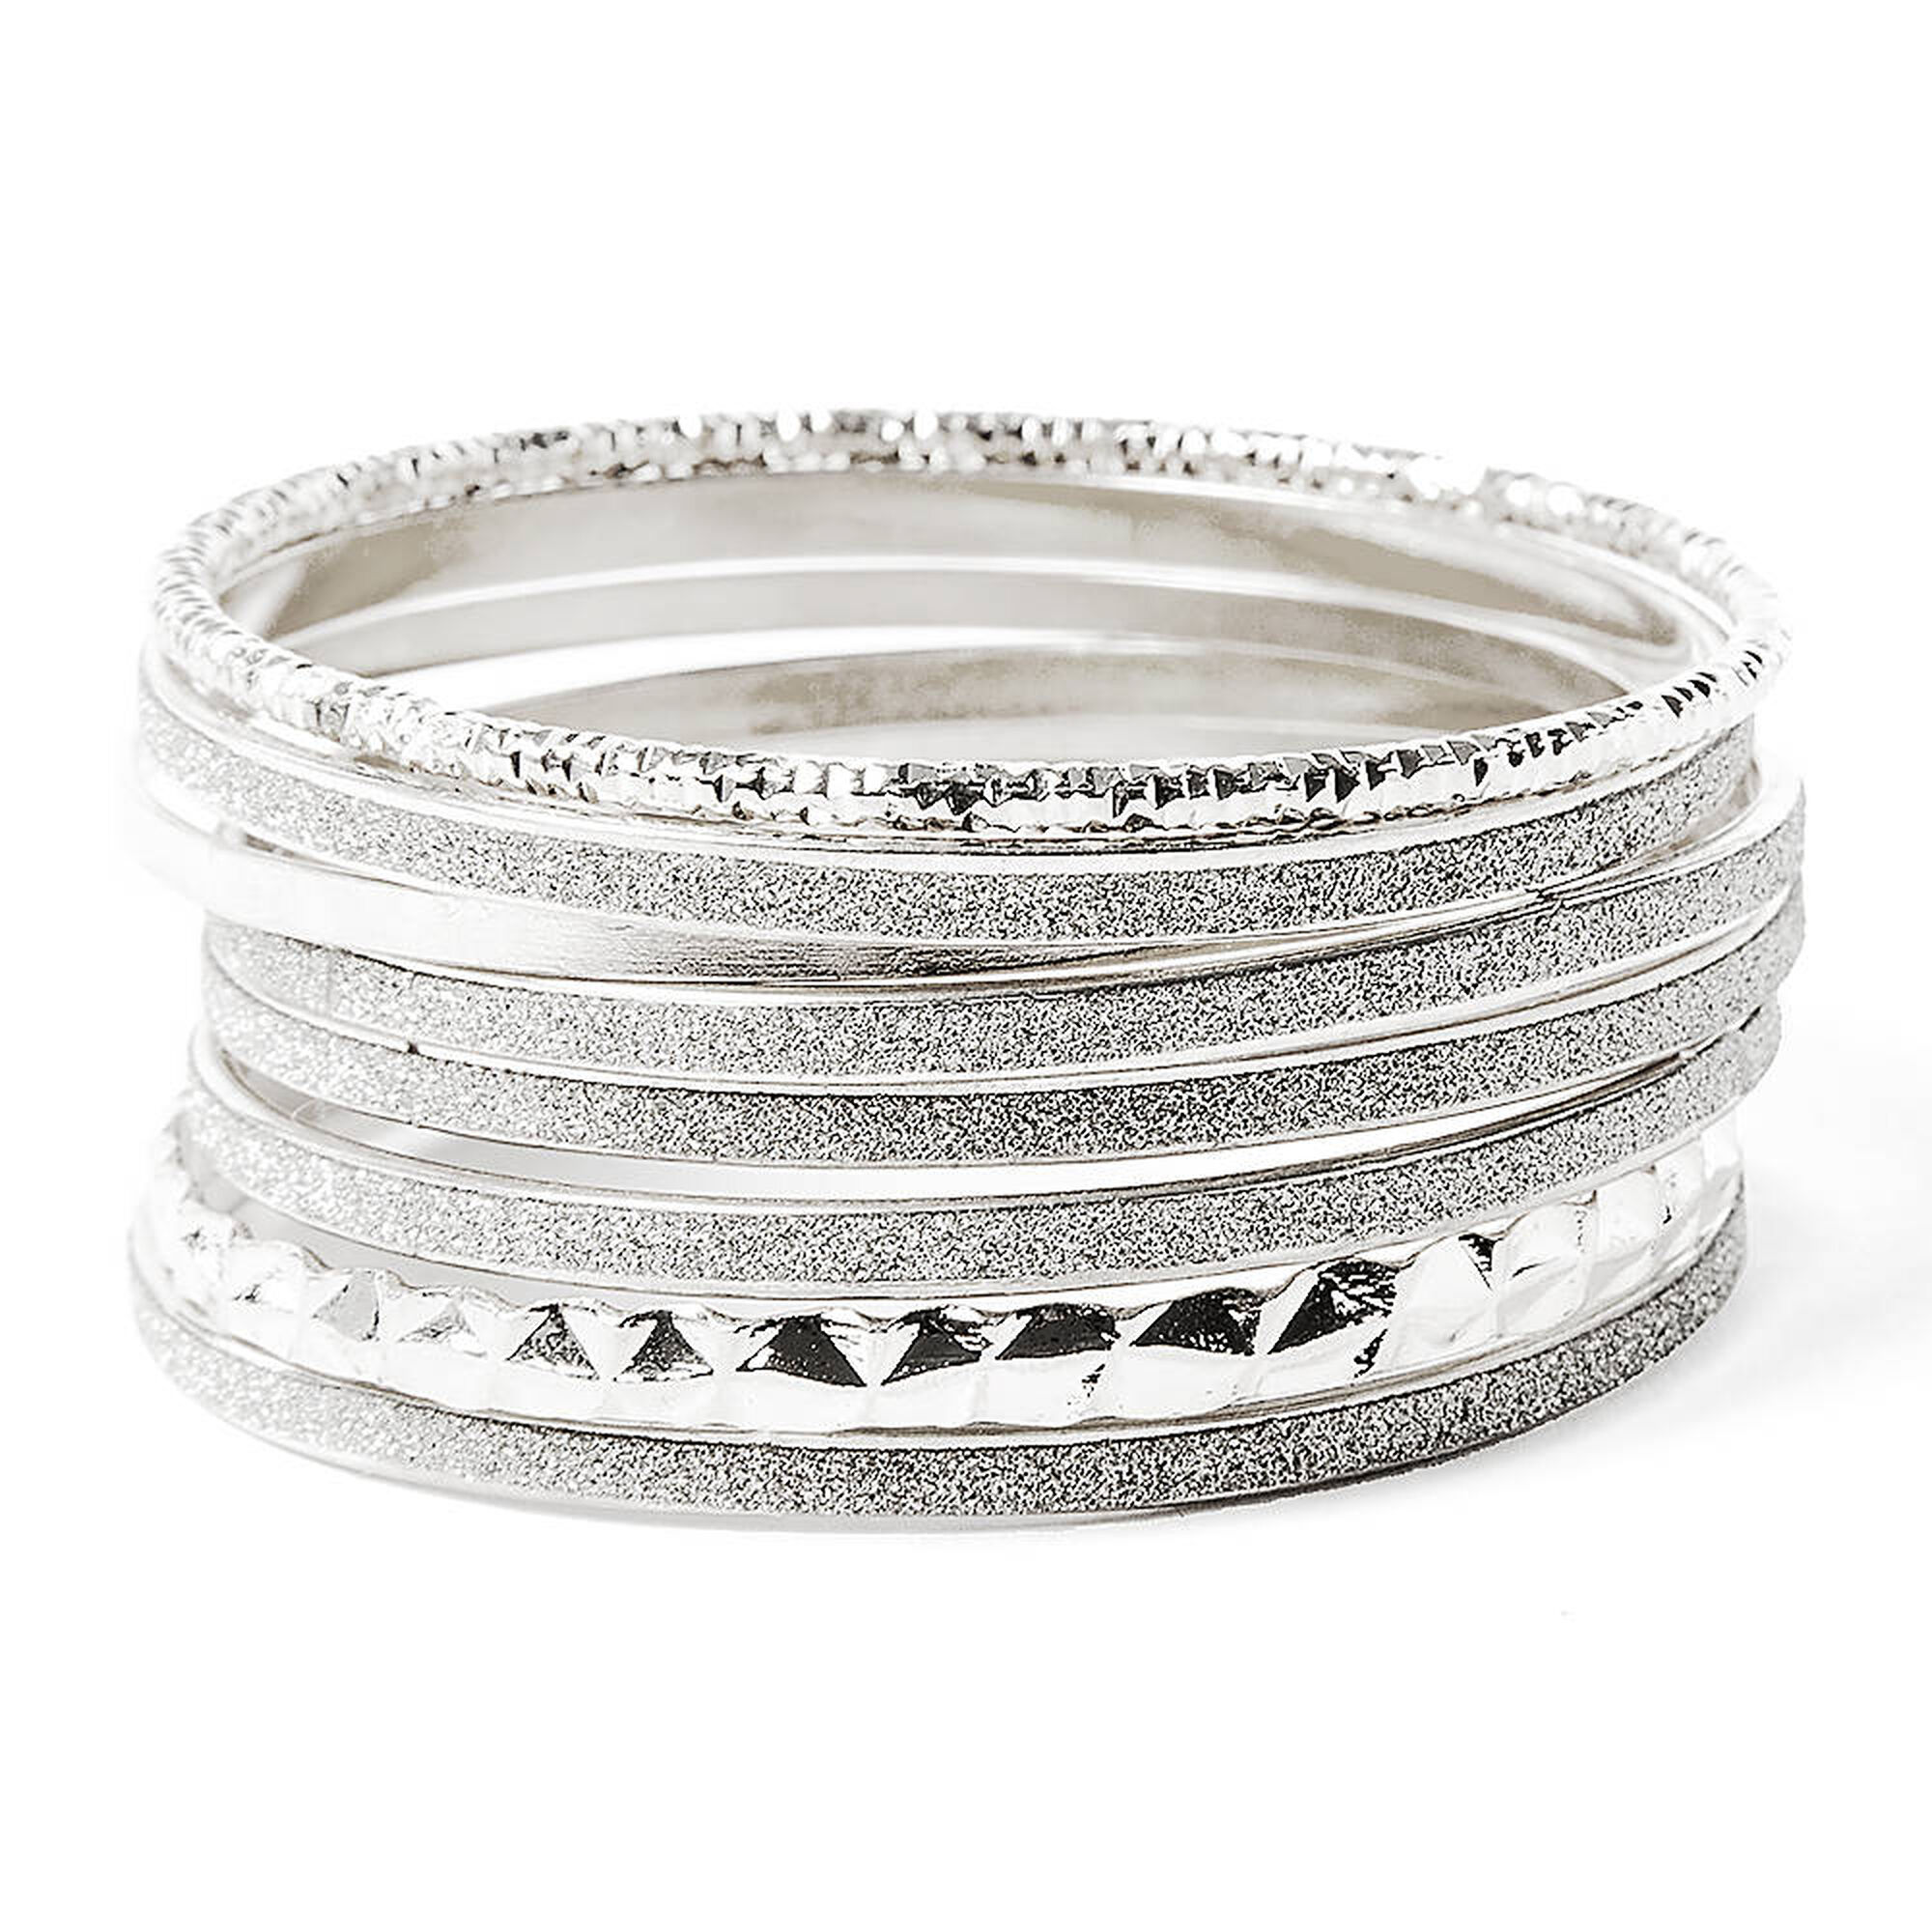 8 Pack Glitter & Textured Silver Bangles | Claire\'s US